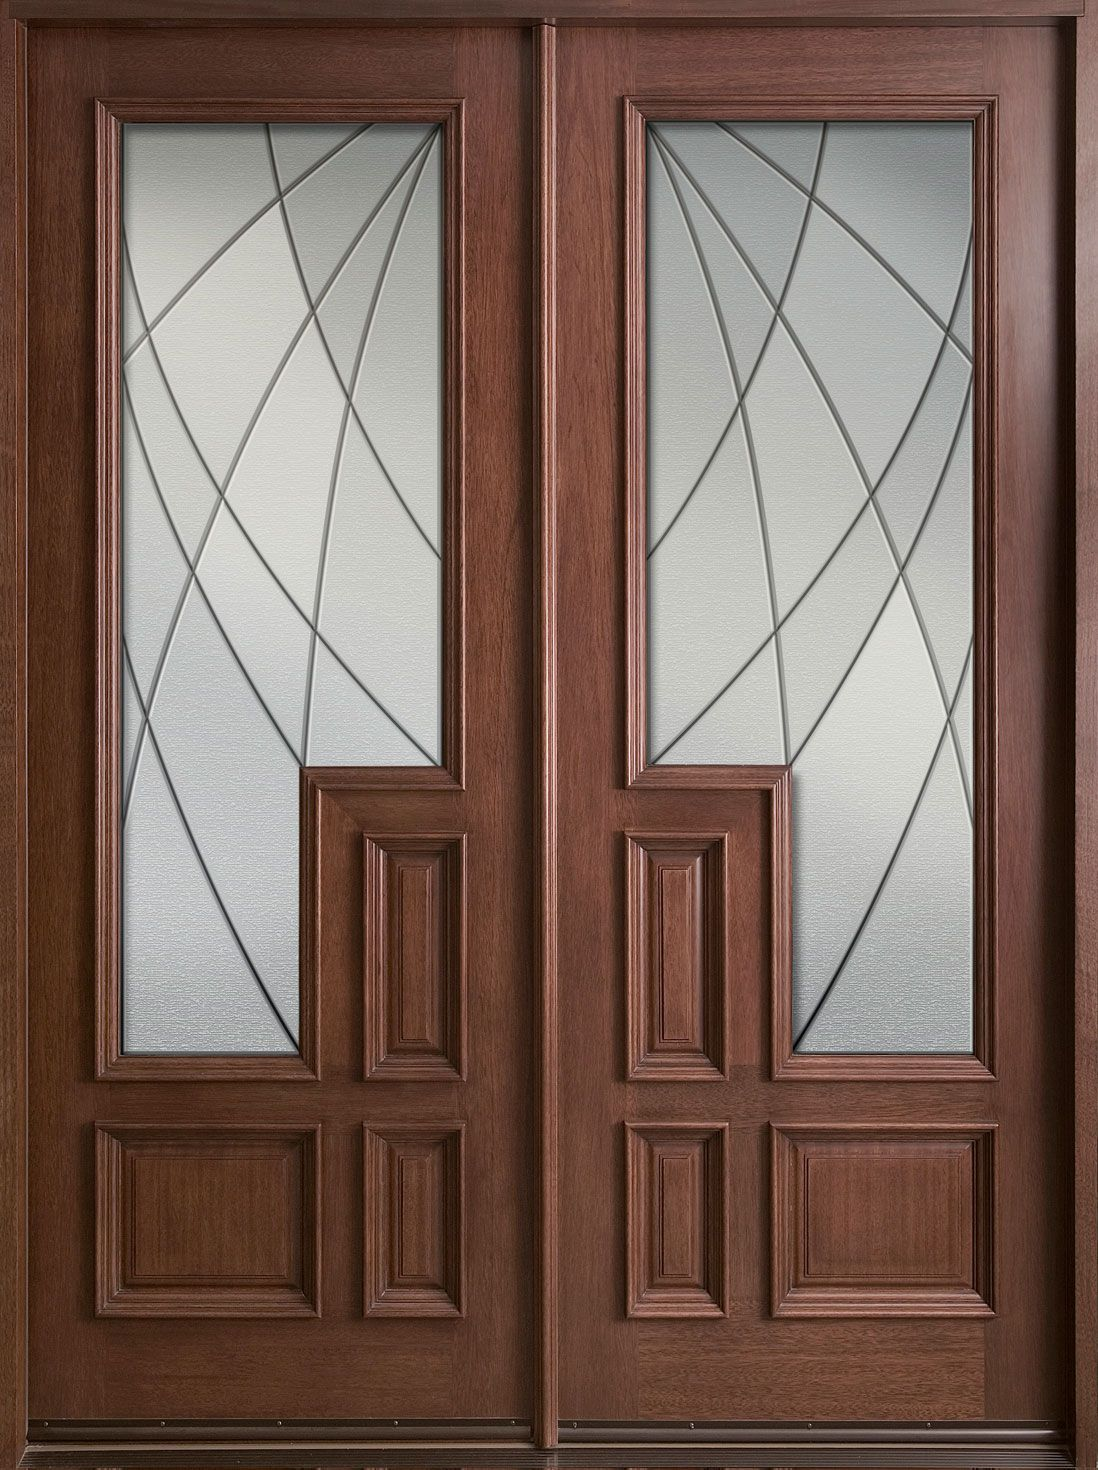 Inspiring double fiberglass entry door as furniture for for External door designs